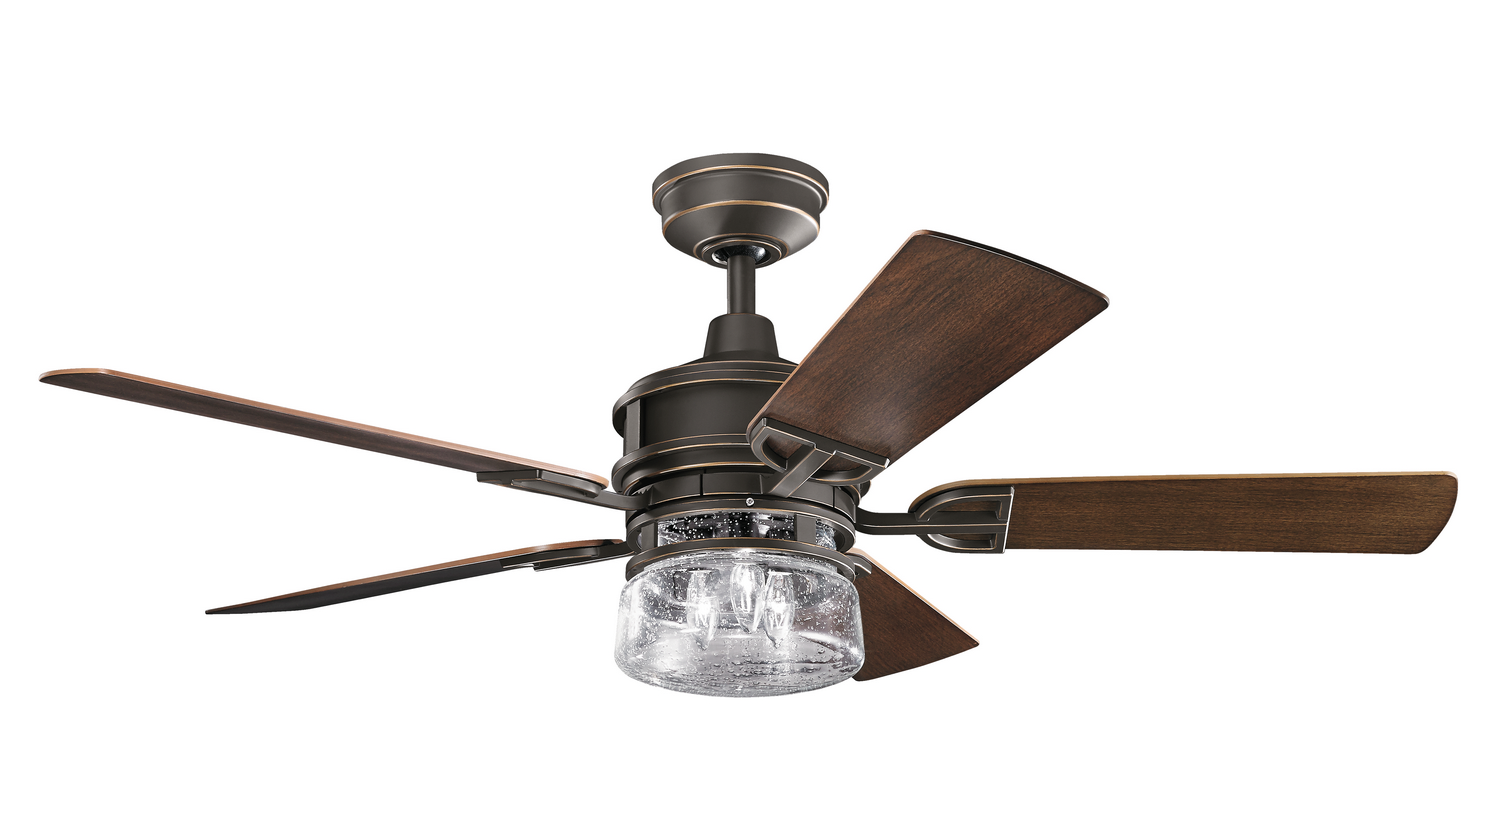 52 inchCeiling Fan from the Patio collection by Kichler 310139OZ